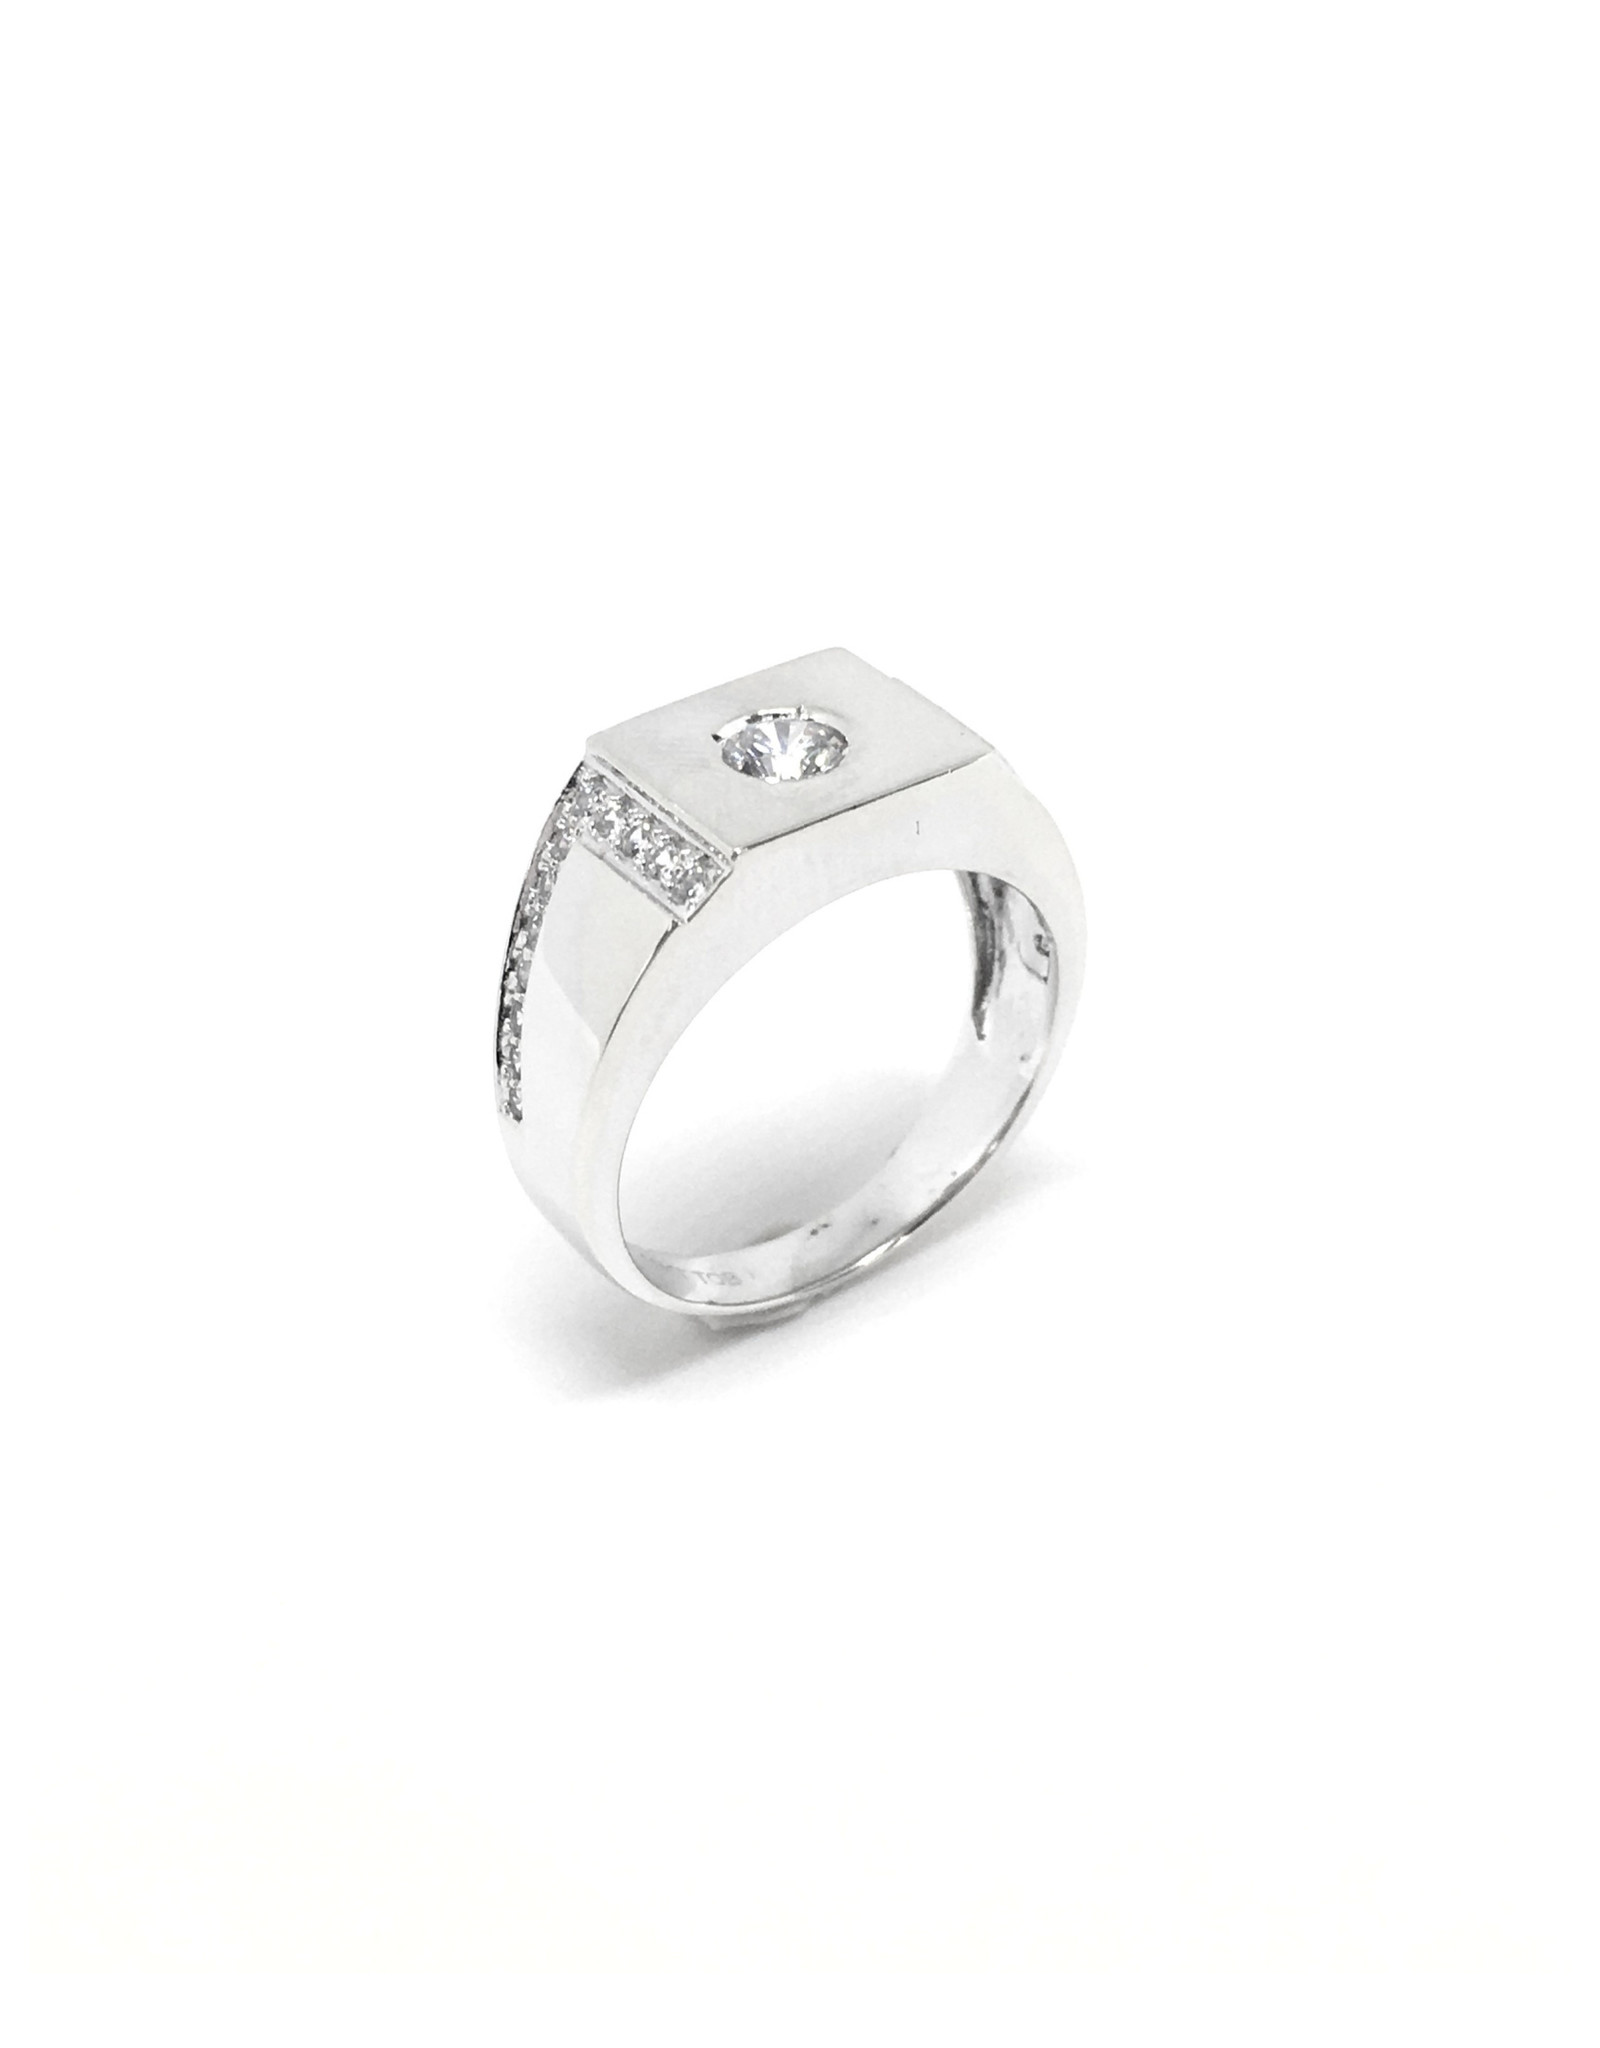 Bague Homme Or blanc 10K